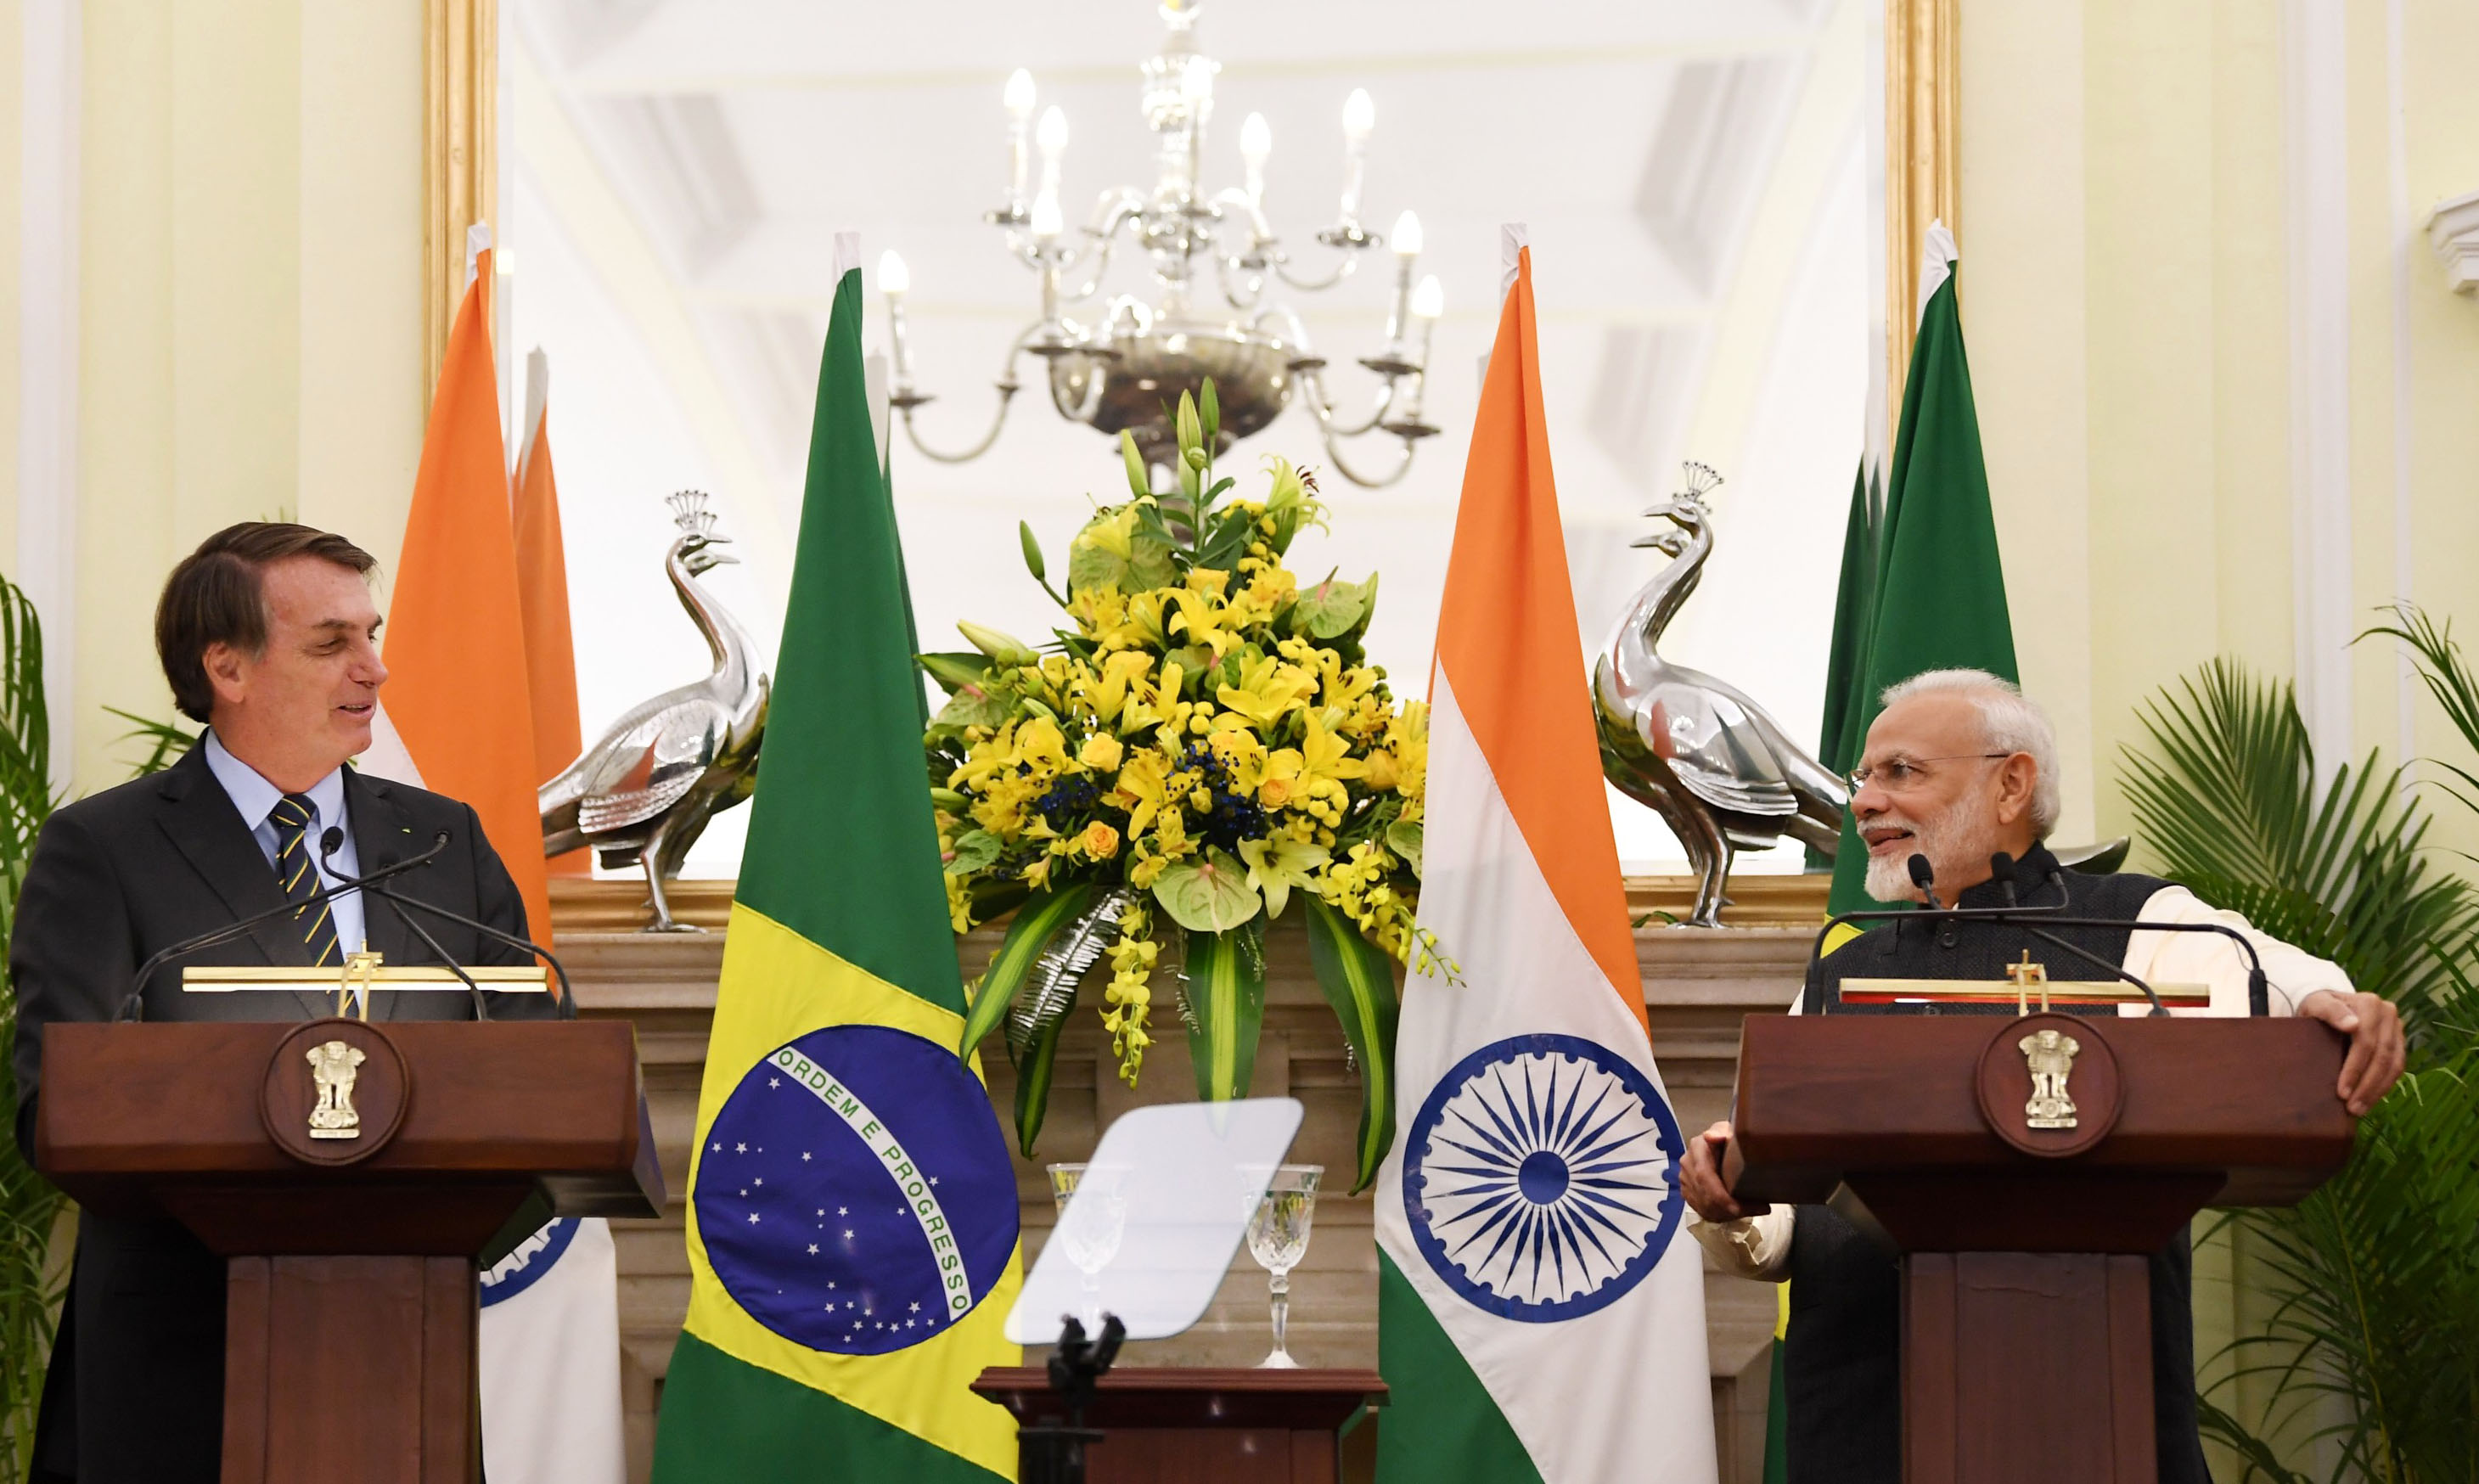 Prime Minister, Shri Narendra Modi and the President of the Federative Republic of Brazil, Mr. Jair Messias Bolsonaro at the Joint Press Statements, at Hyderabad House, in New Delhi